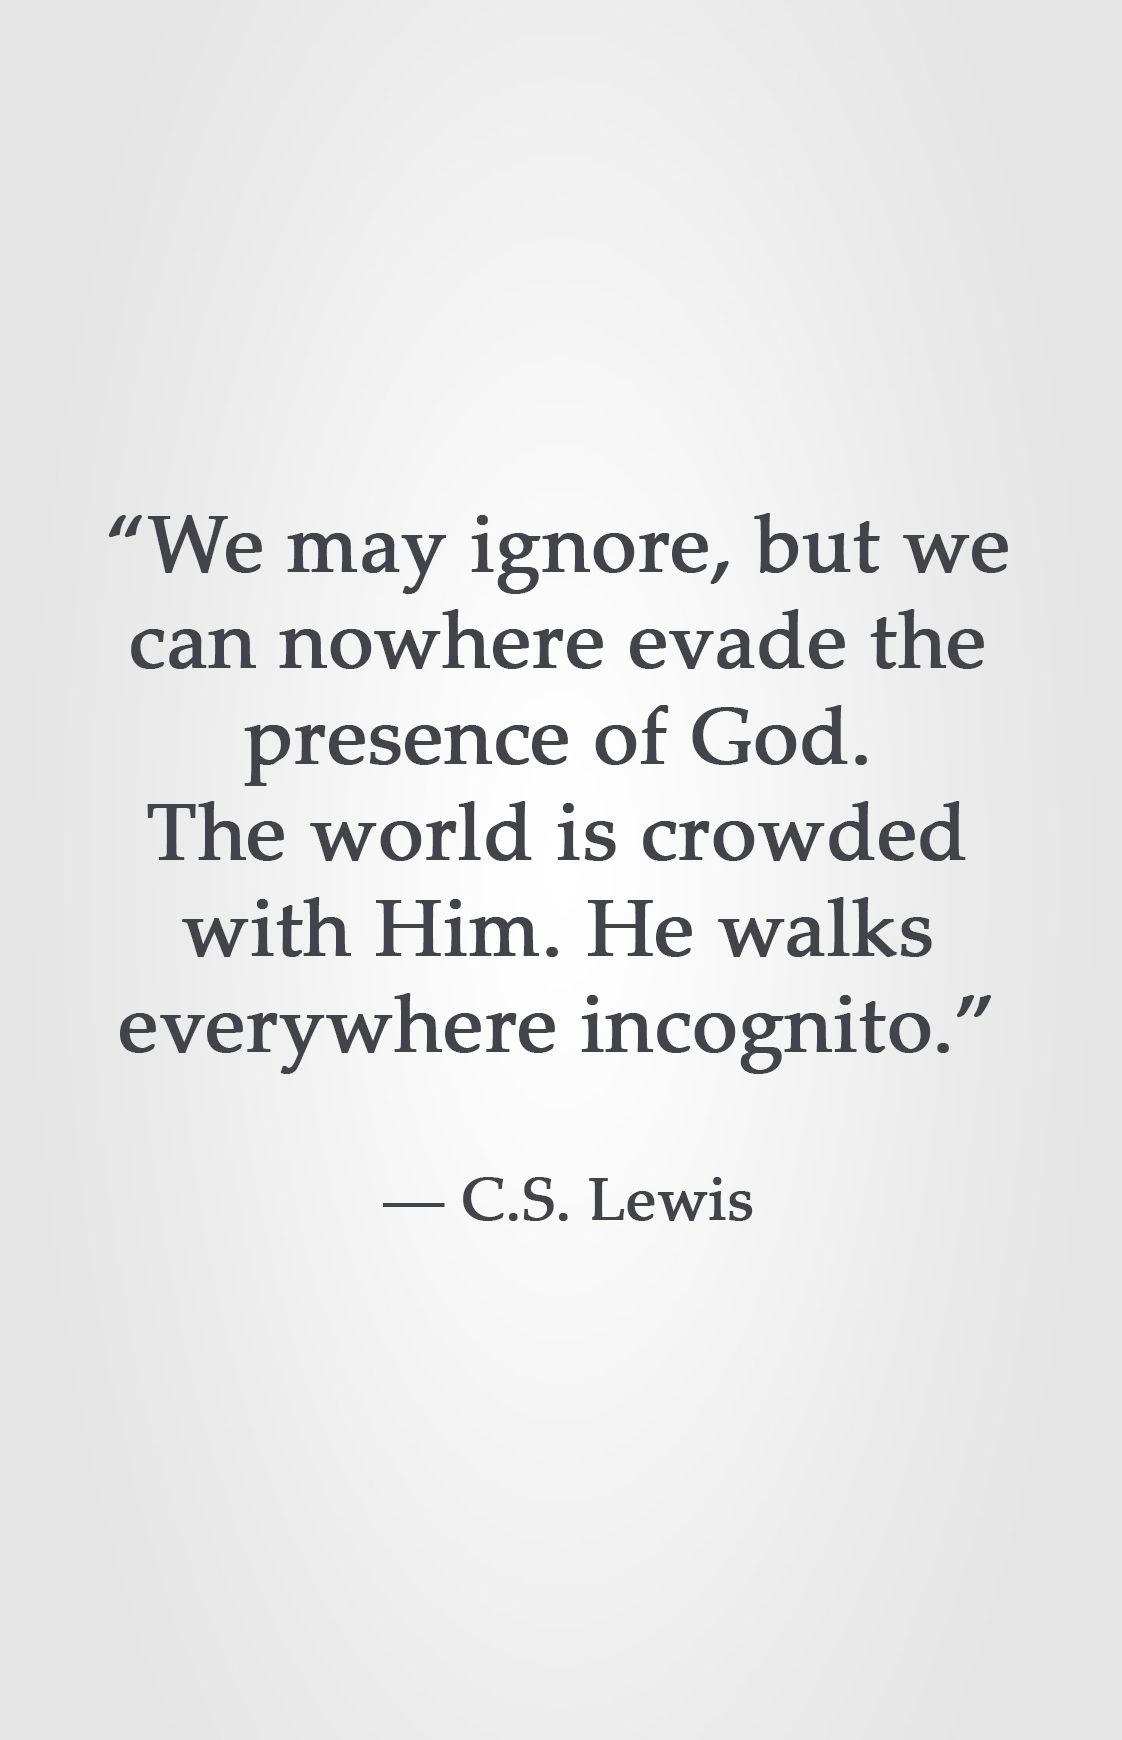 We May Ignore But We Can Nowhere Evade The Presence Of God The World Is Crowded With Him He Walks Everywhere Incognito Cs Lewis Quotes Bible Quotes Words